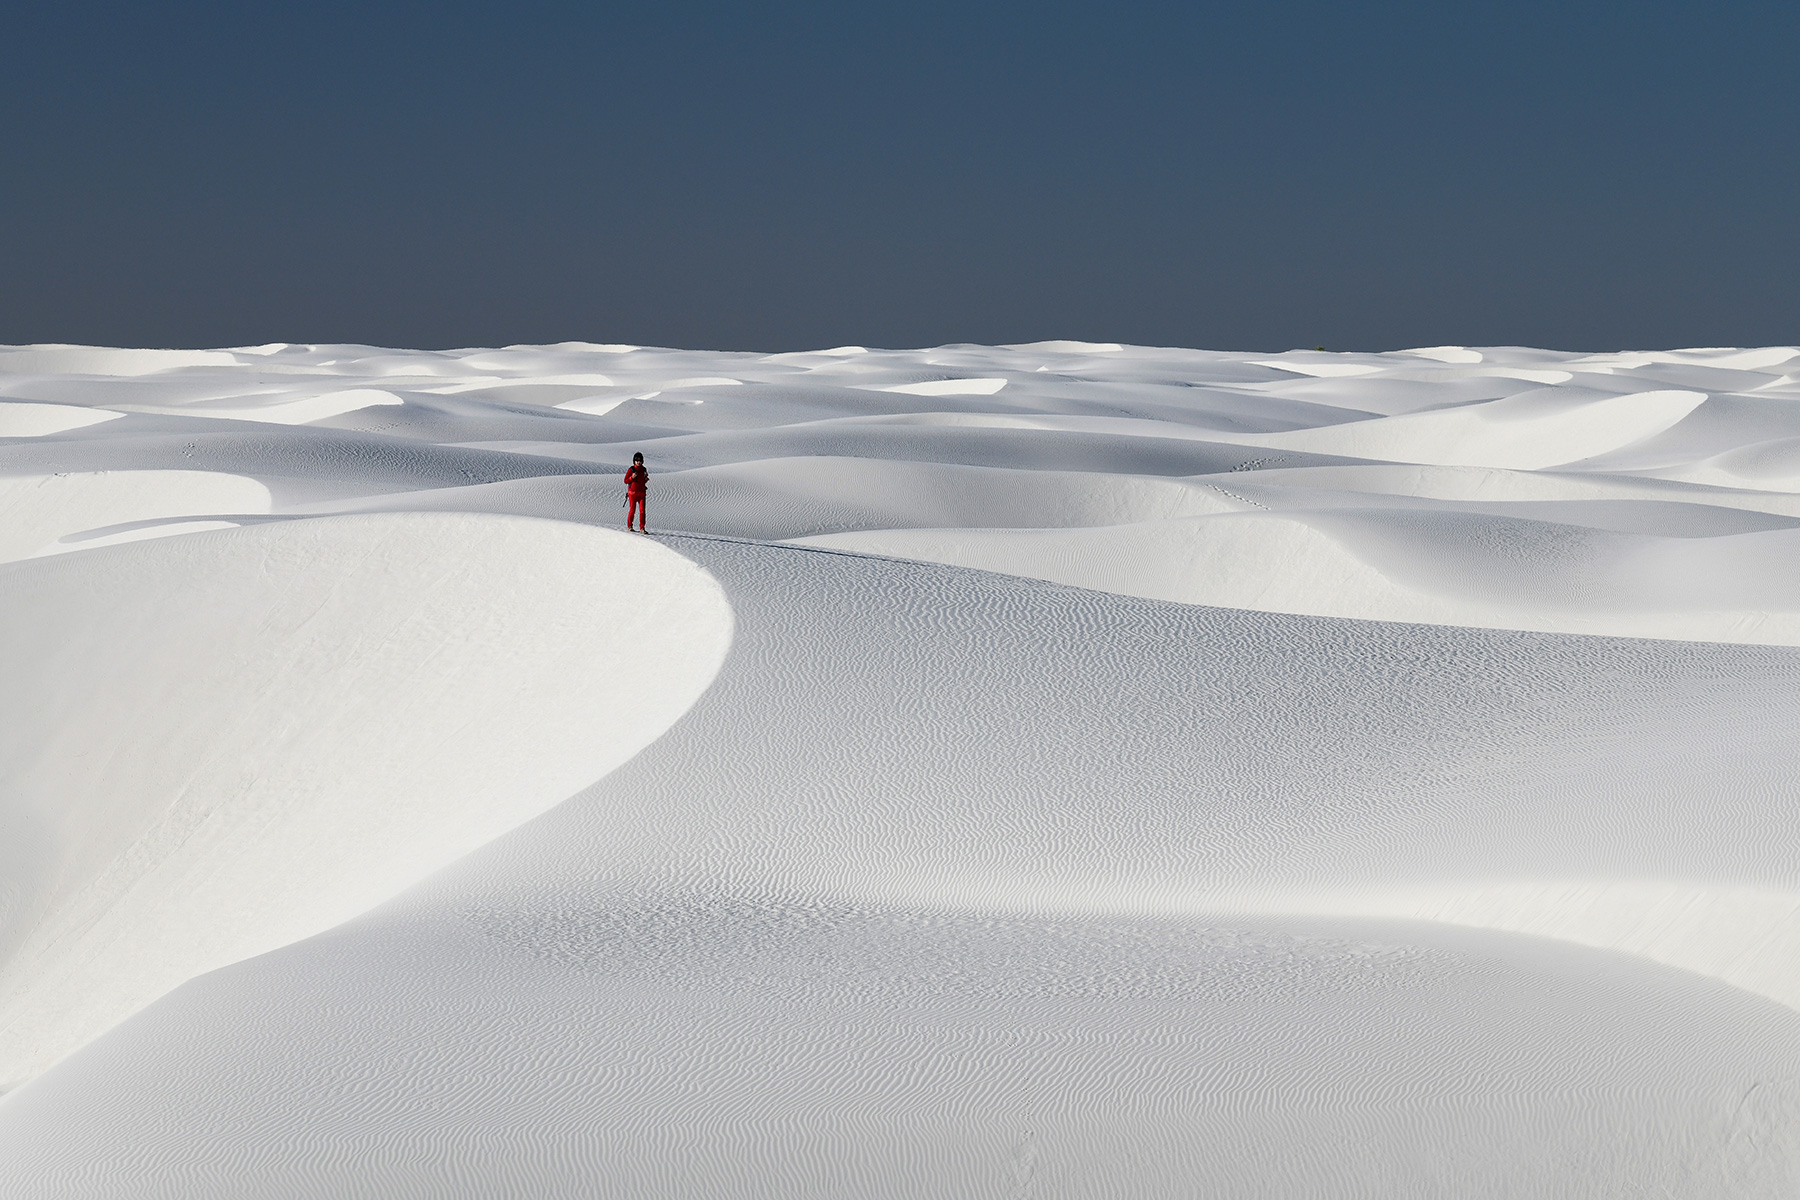 White Sands National Park (Nouveau Mexique, USA) - Ensemble de dunes de sable blanc de gypse avec personnage en rouge